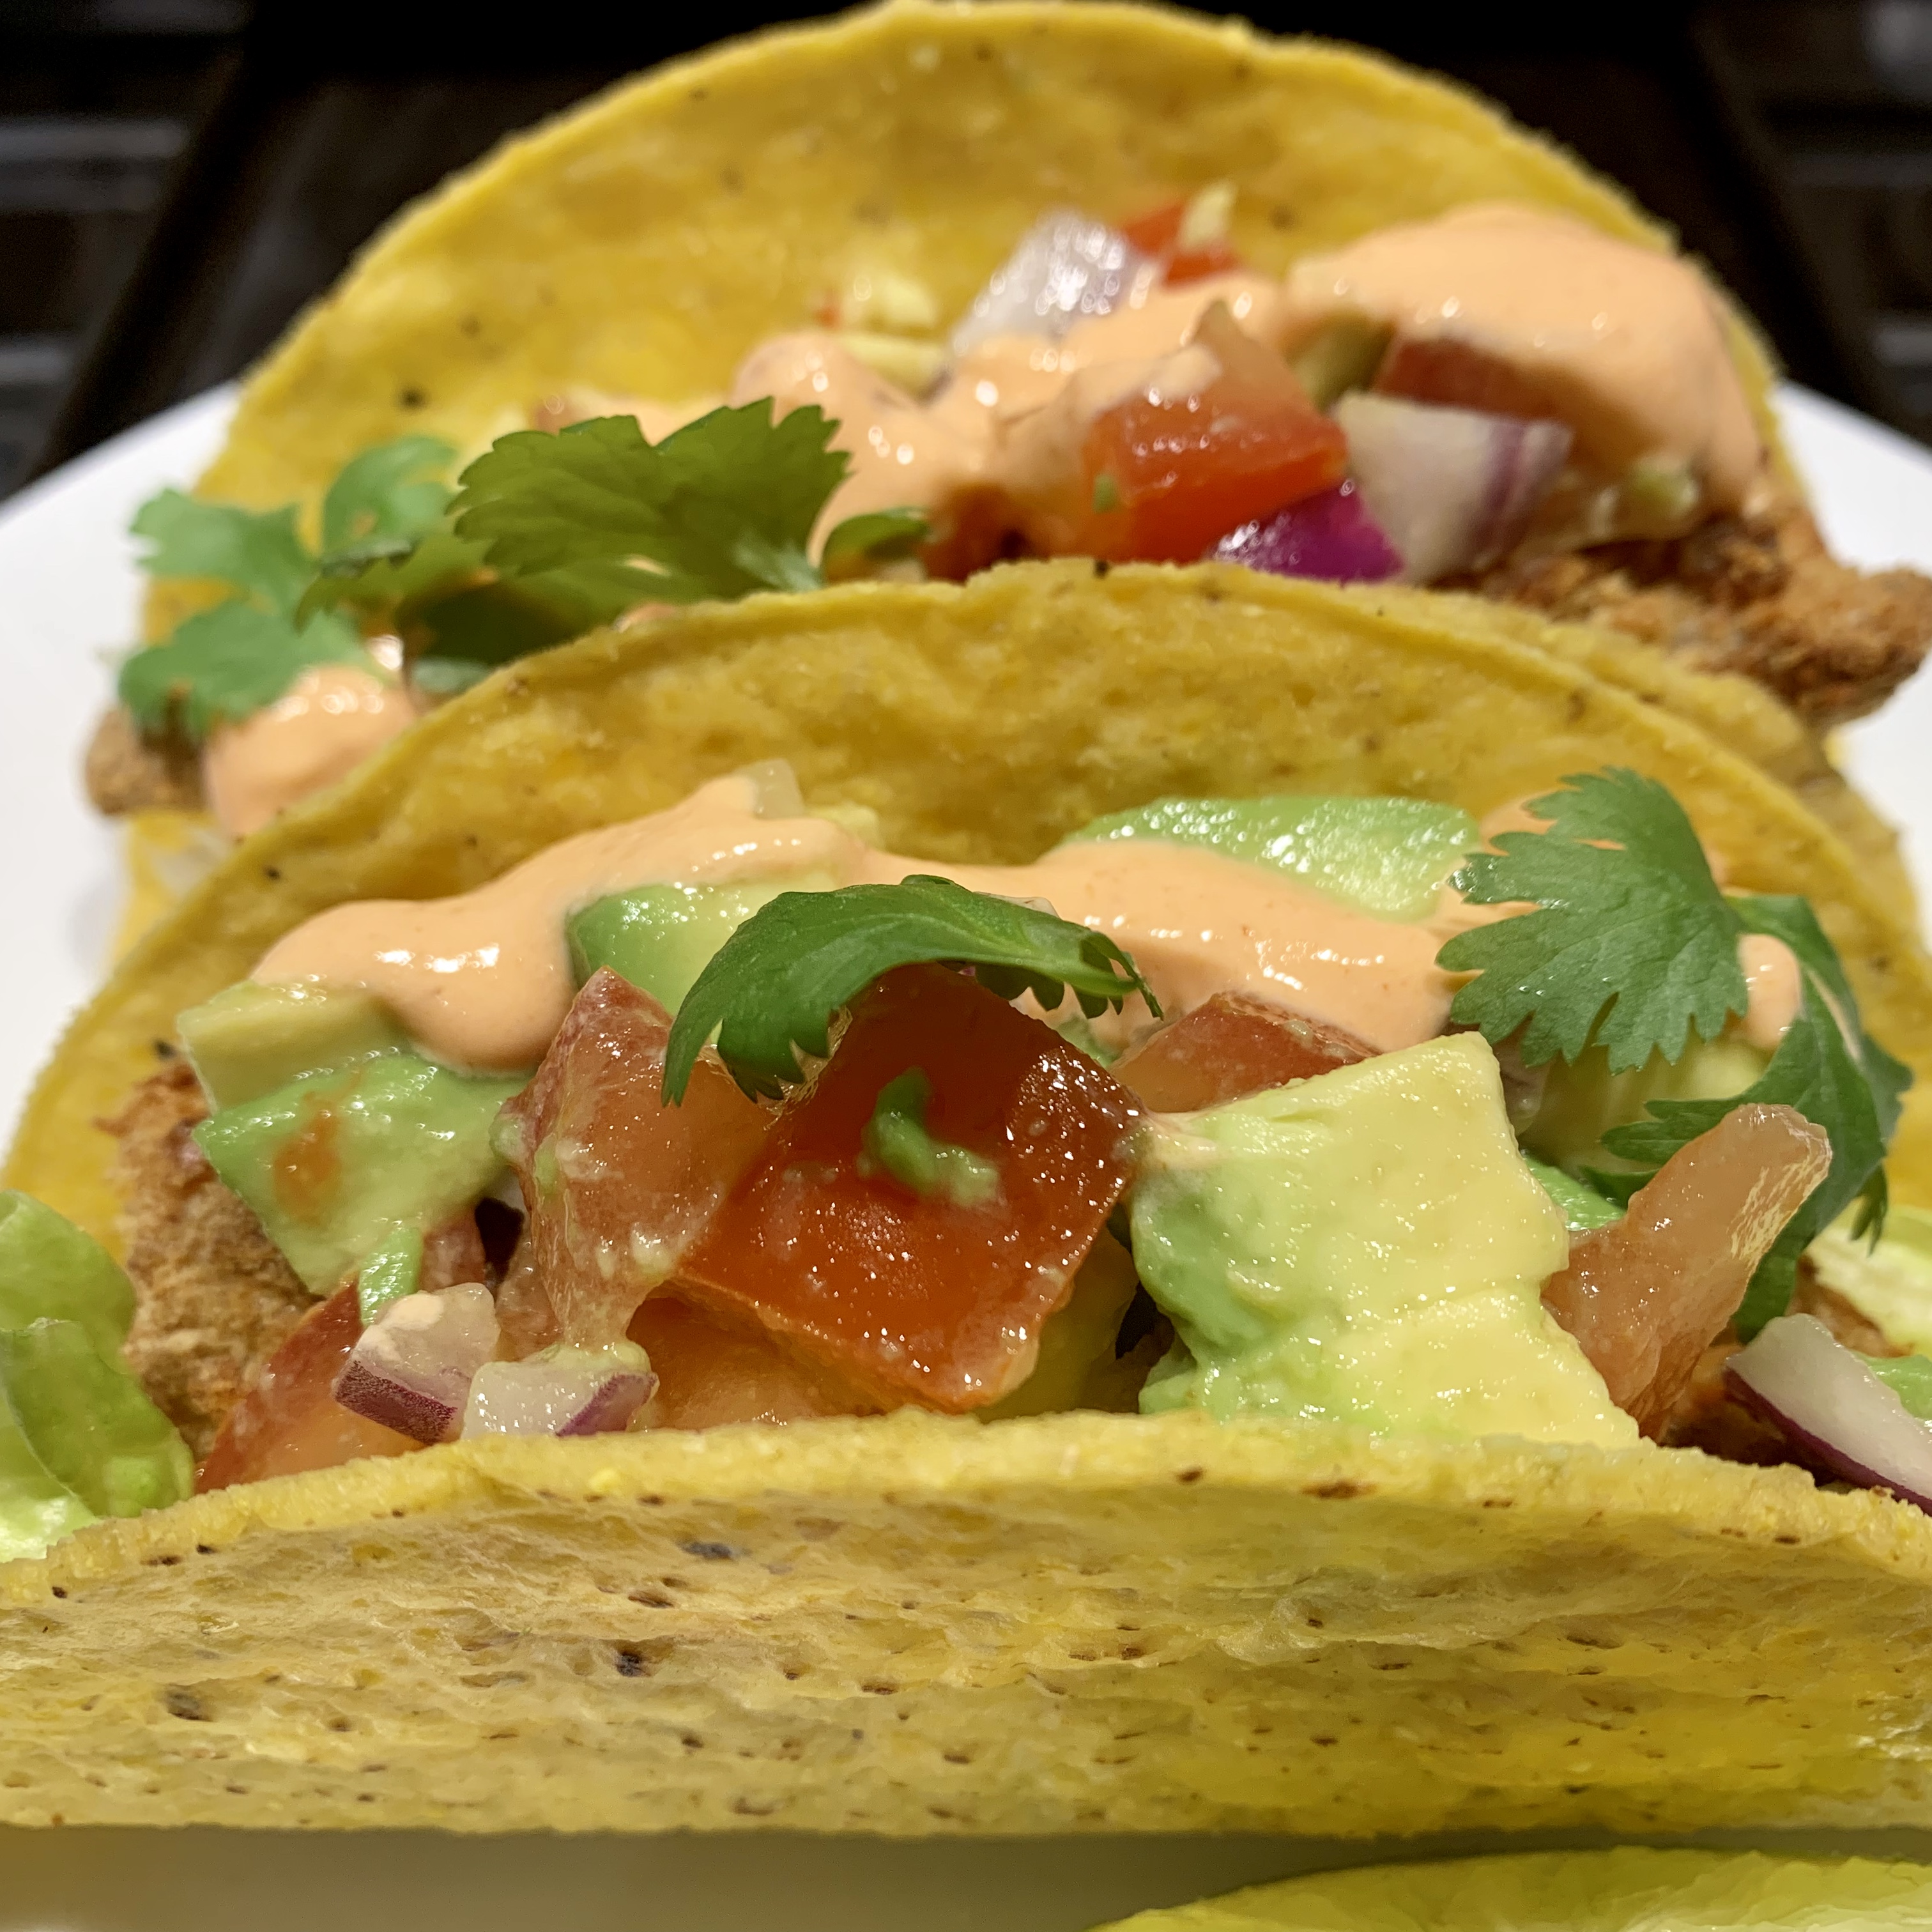 Get Your Healthy On with These Spicy Air Fryer Fish Tacos! via @susanmylovingoven.com